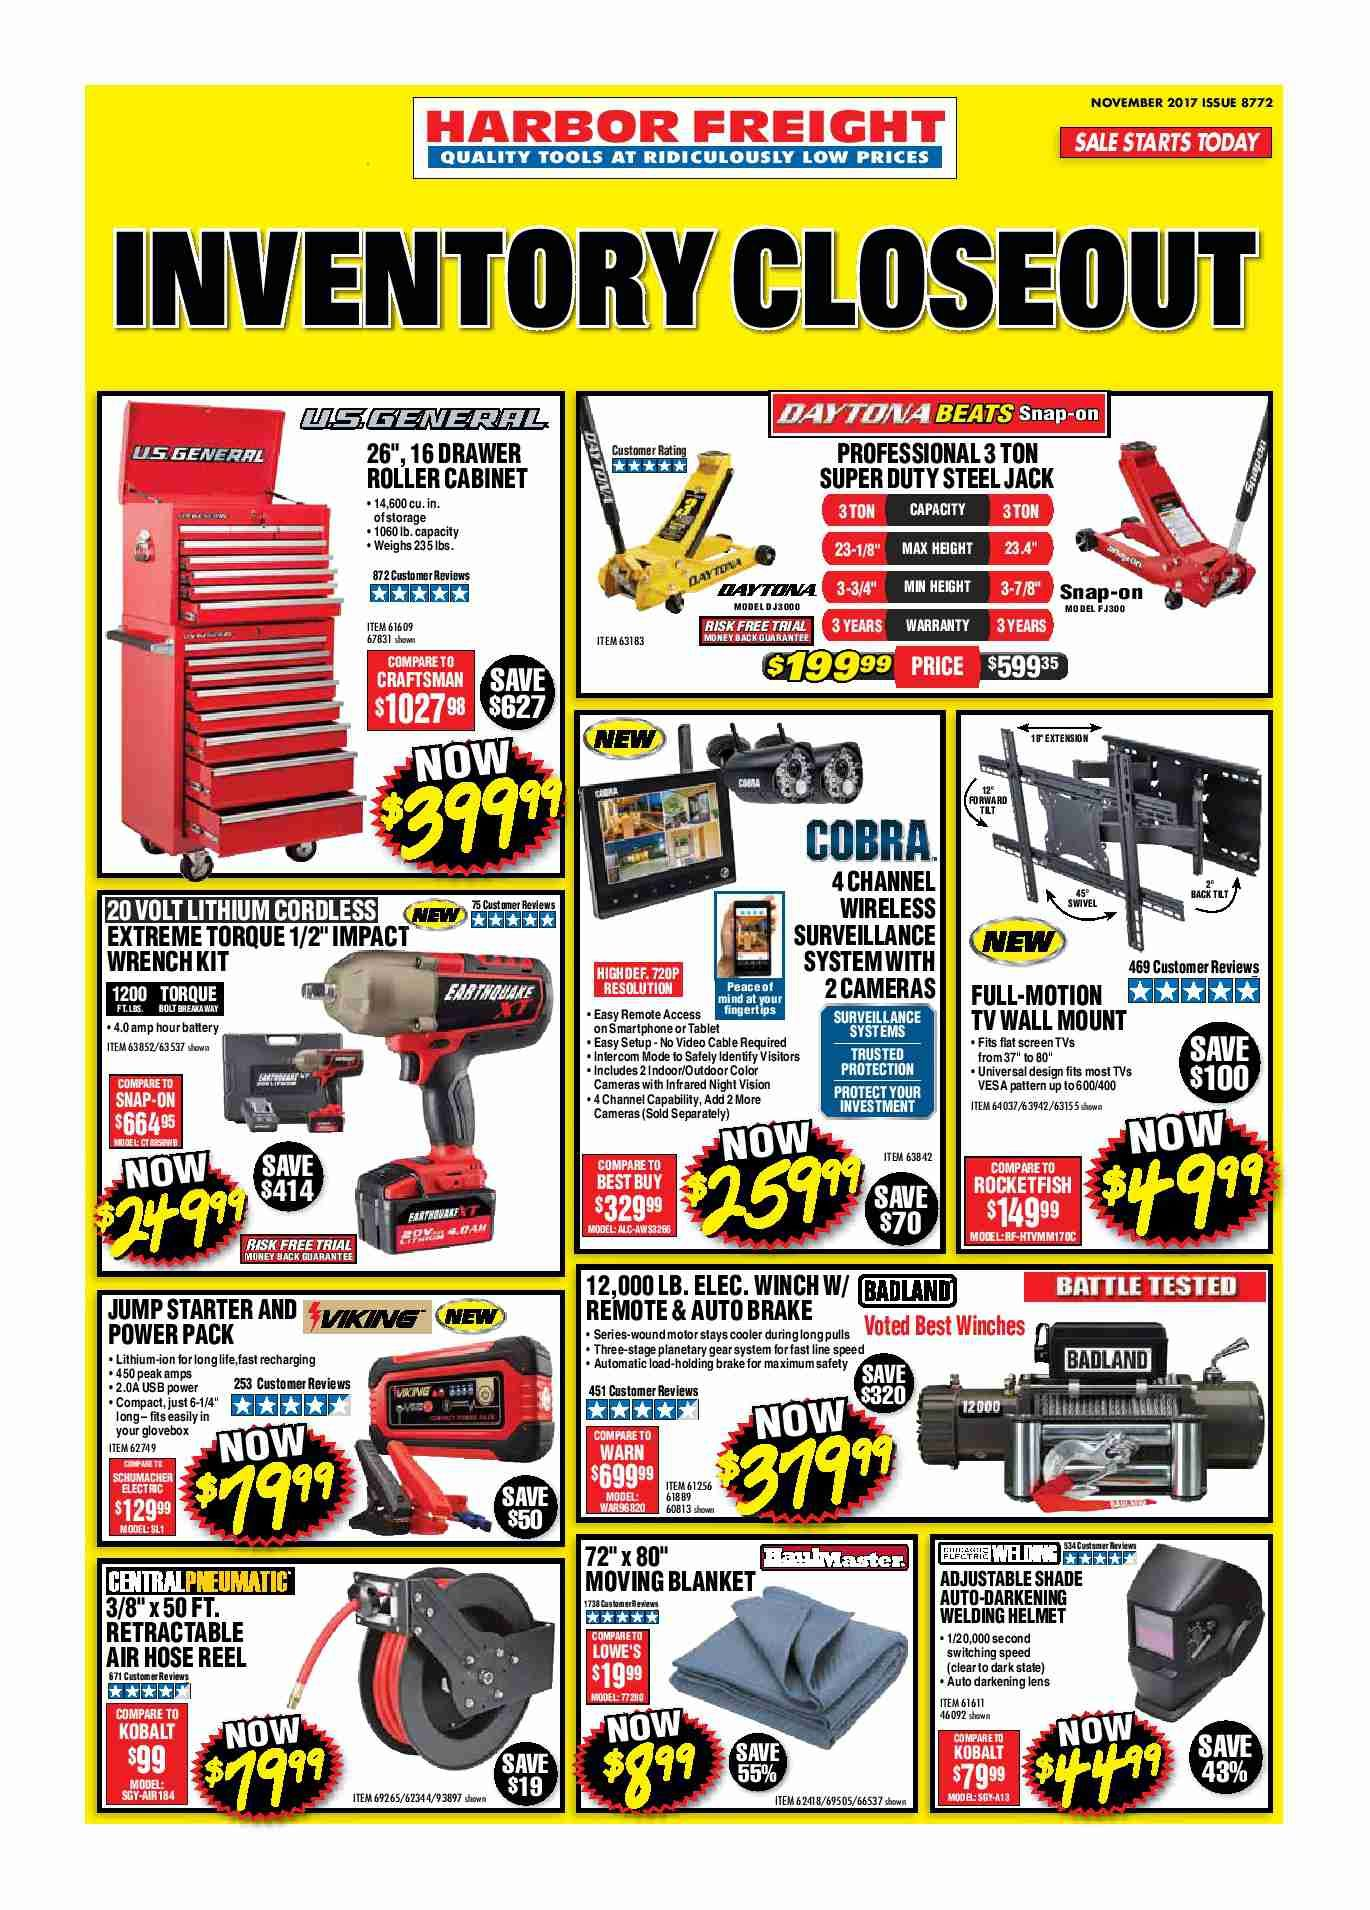 Pin By Carlos Moran On Tools Pinterest Weekly Ads And Harbor Freight Trailer Wiring Problems Free Download Diagram Ad December 2017 Http Olcatalogcom